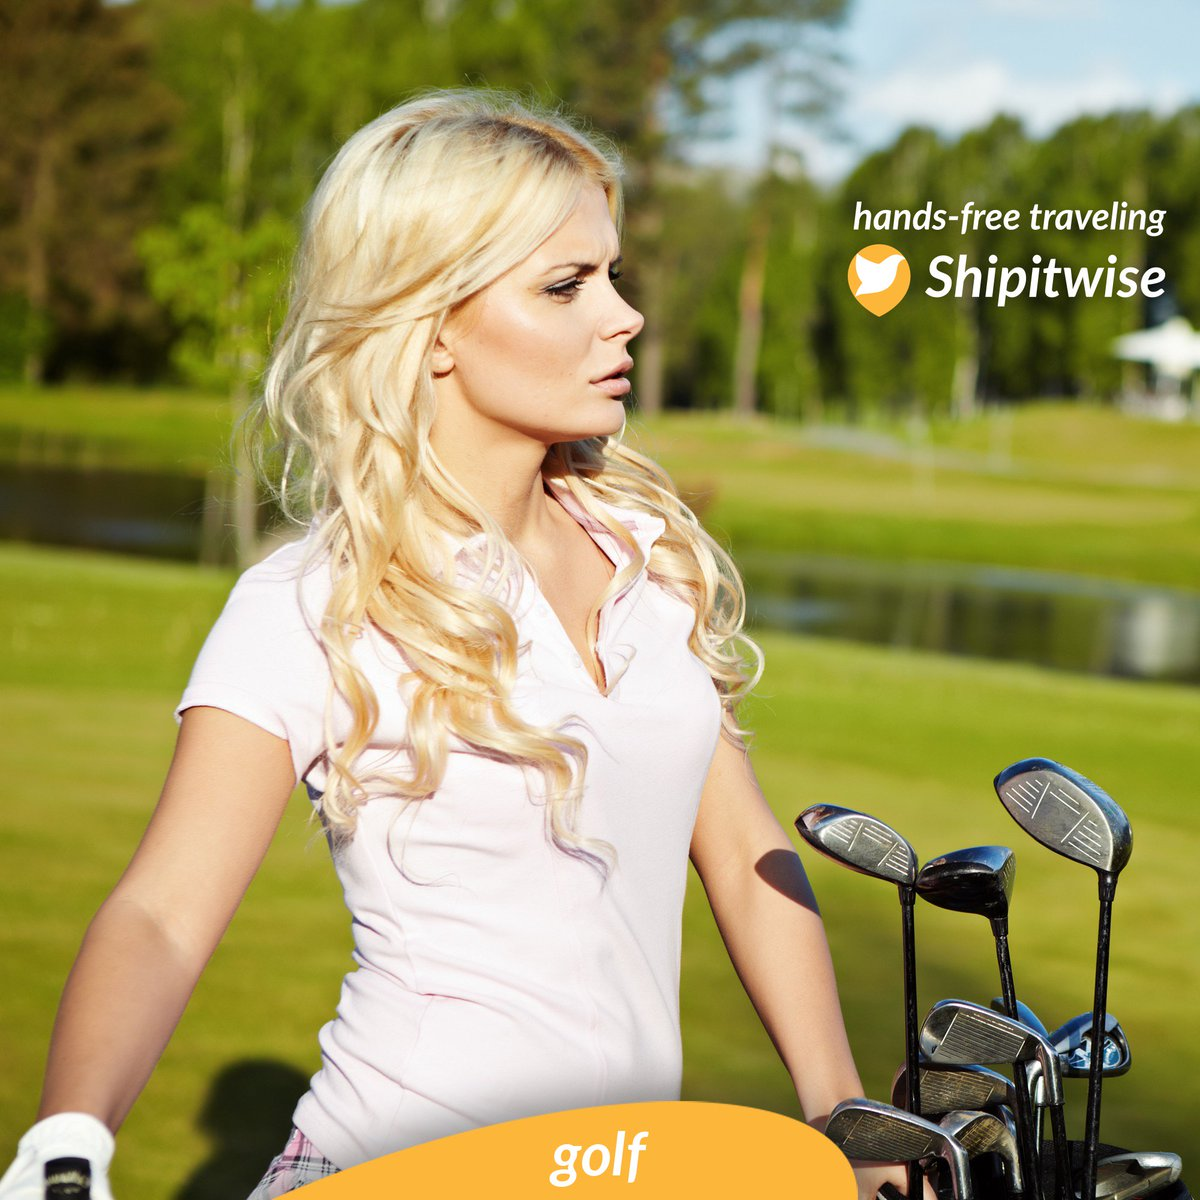 #Travelling with #golfclubs is not a hassle! @Shipitwise will take your equipment #deliver it door2door   https:// goo.gl/iTMbgm  &nbsp;   #traveltips<br>http://pic.twitter.com/oaRHMWgW7f